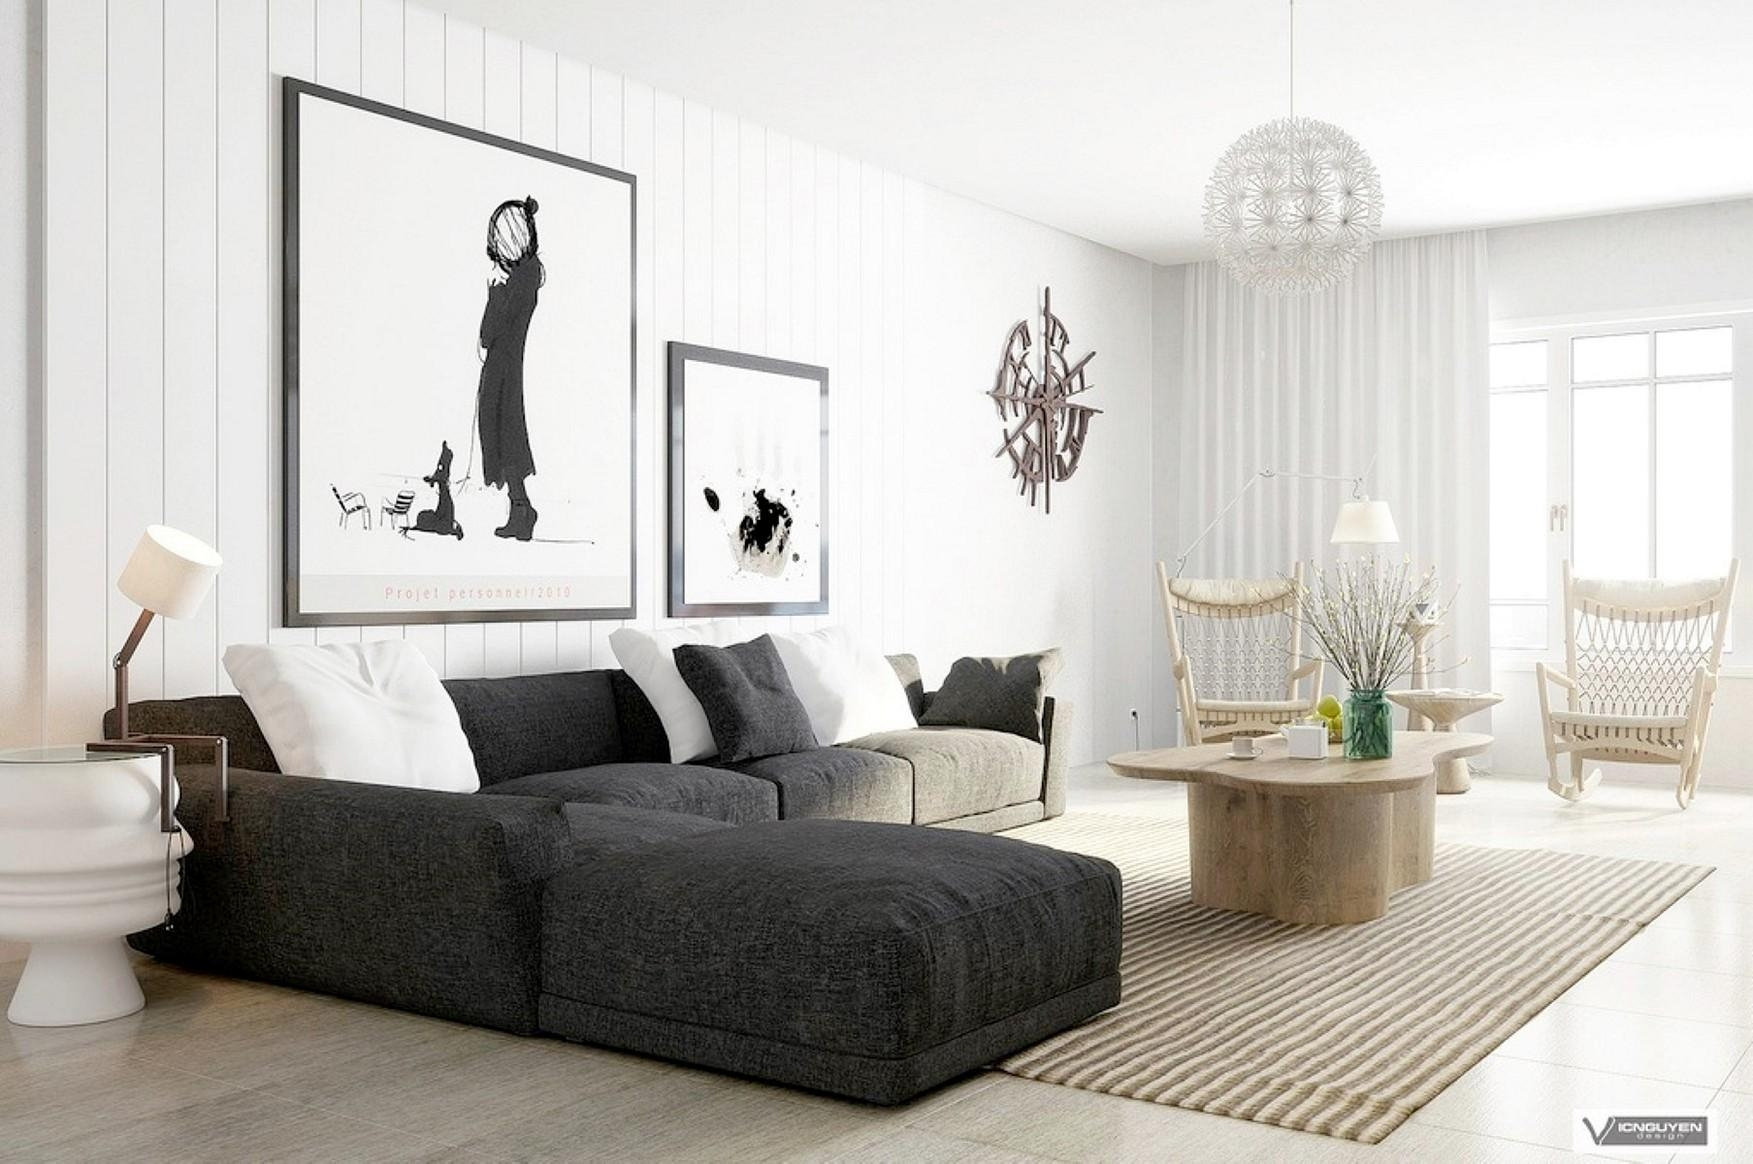 Inspirational Behind Couch Floor Lamp 43 In Room Decorating Ideas With Floor Lamp For Sectional Couch (Image 12 of 15)